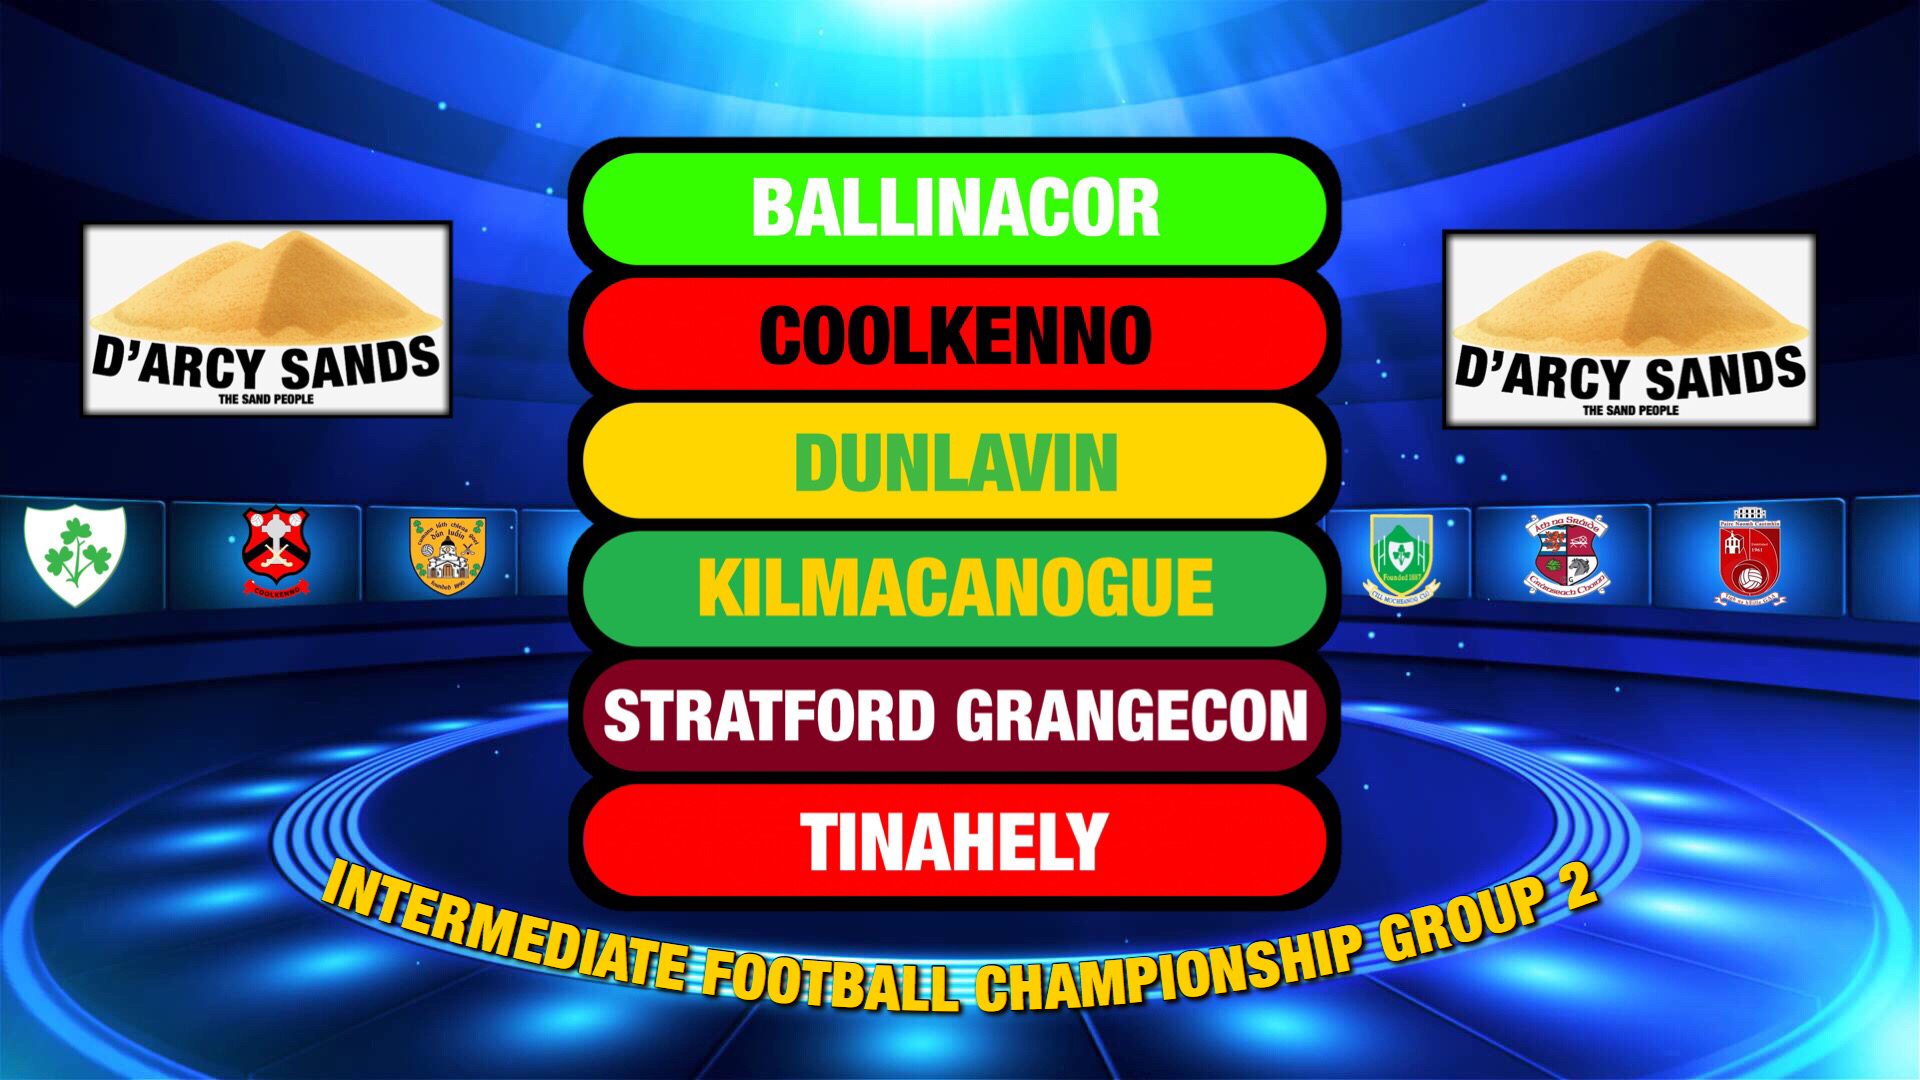 Intermediate Championship Group 2